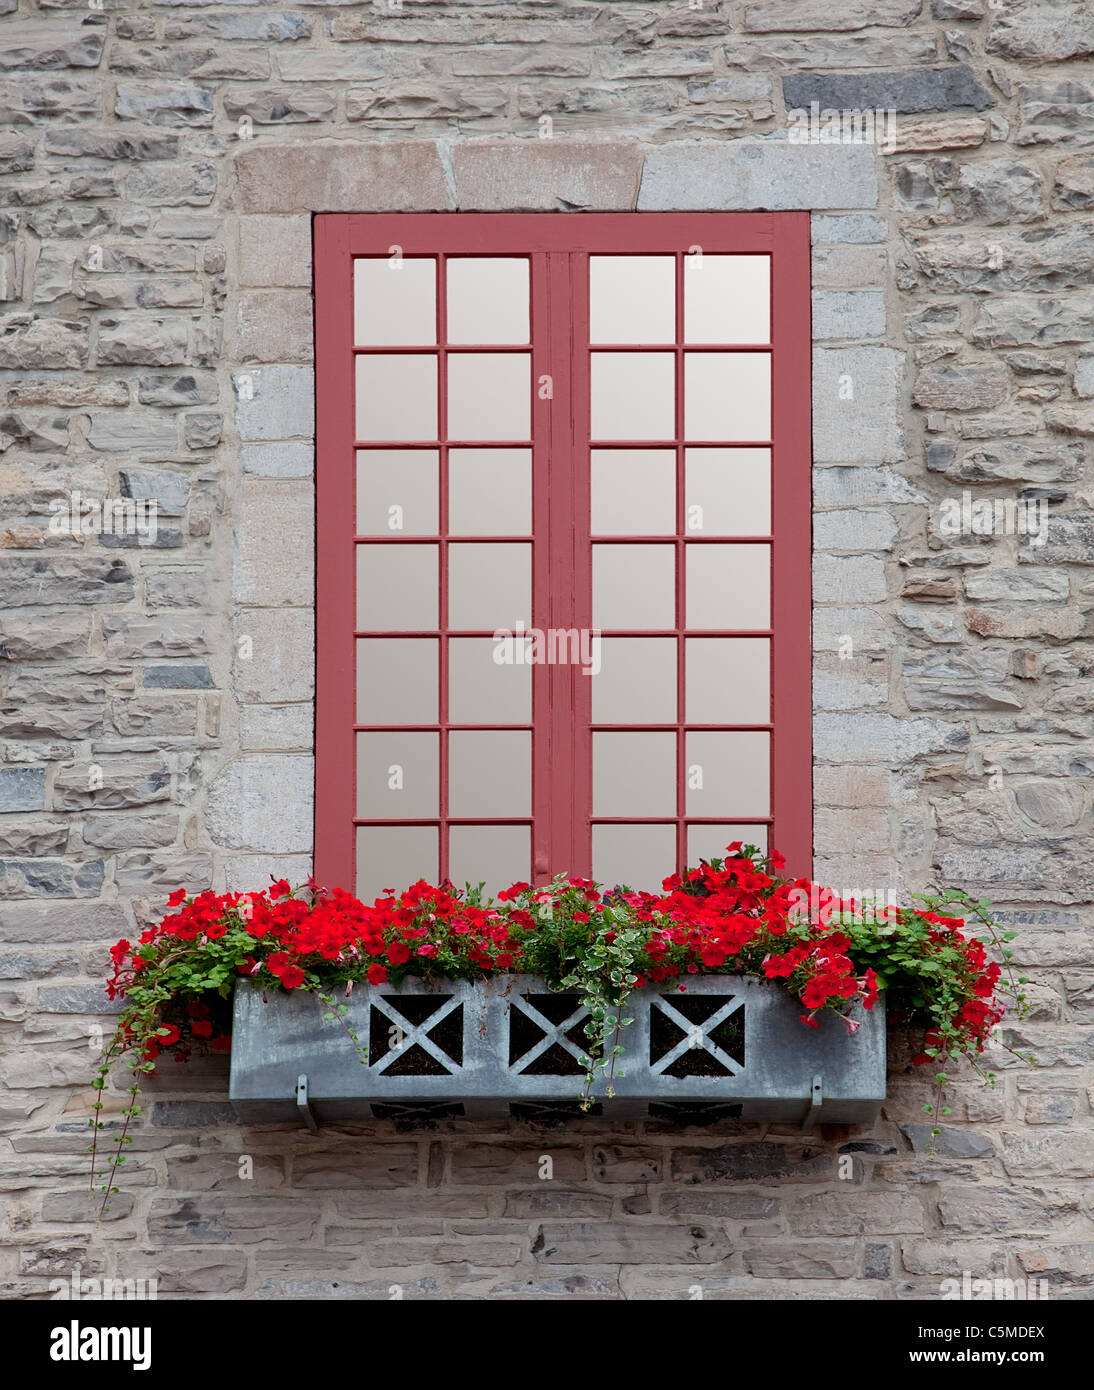 Front view of an old window and a flowerbox on an old stone building. - Stock Image